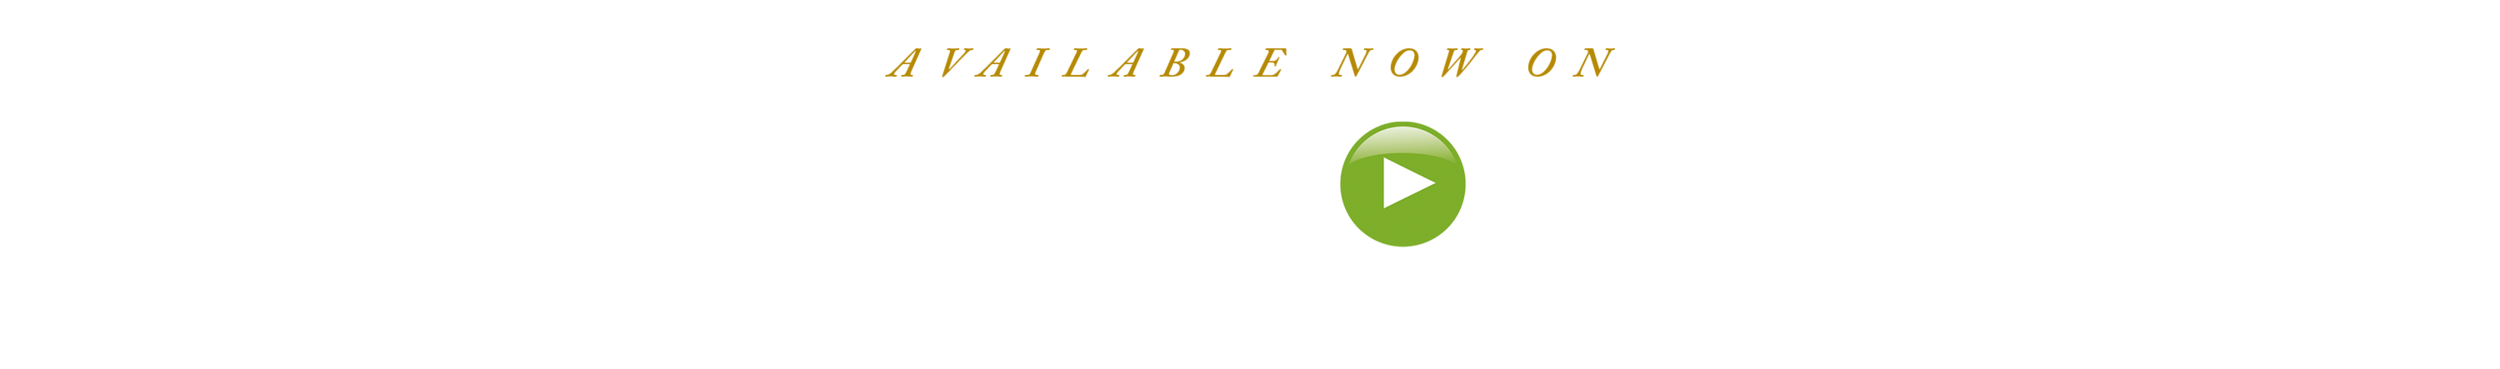 AmazonCover_4Website.png